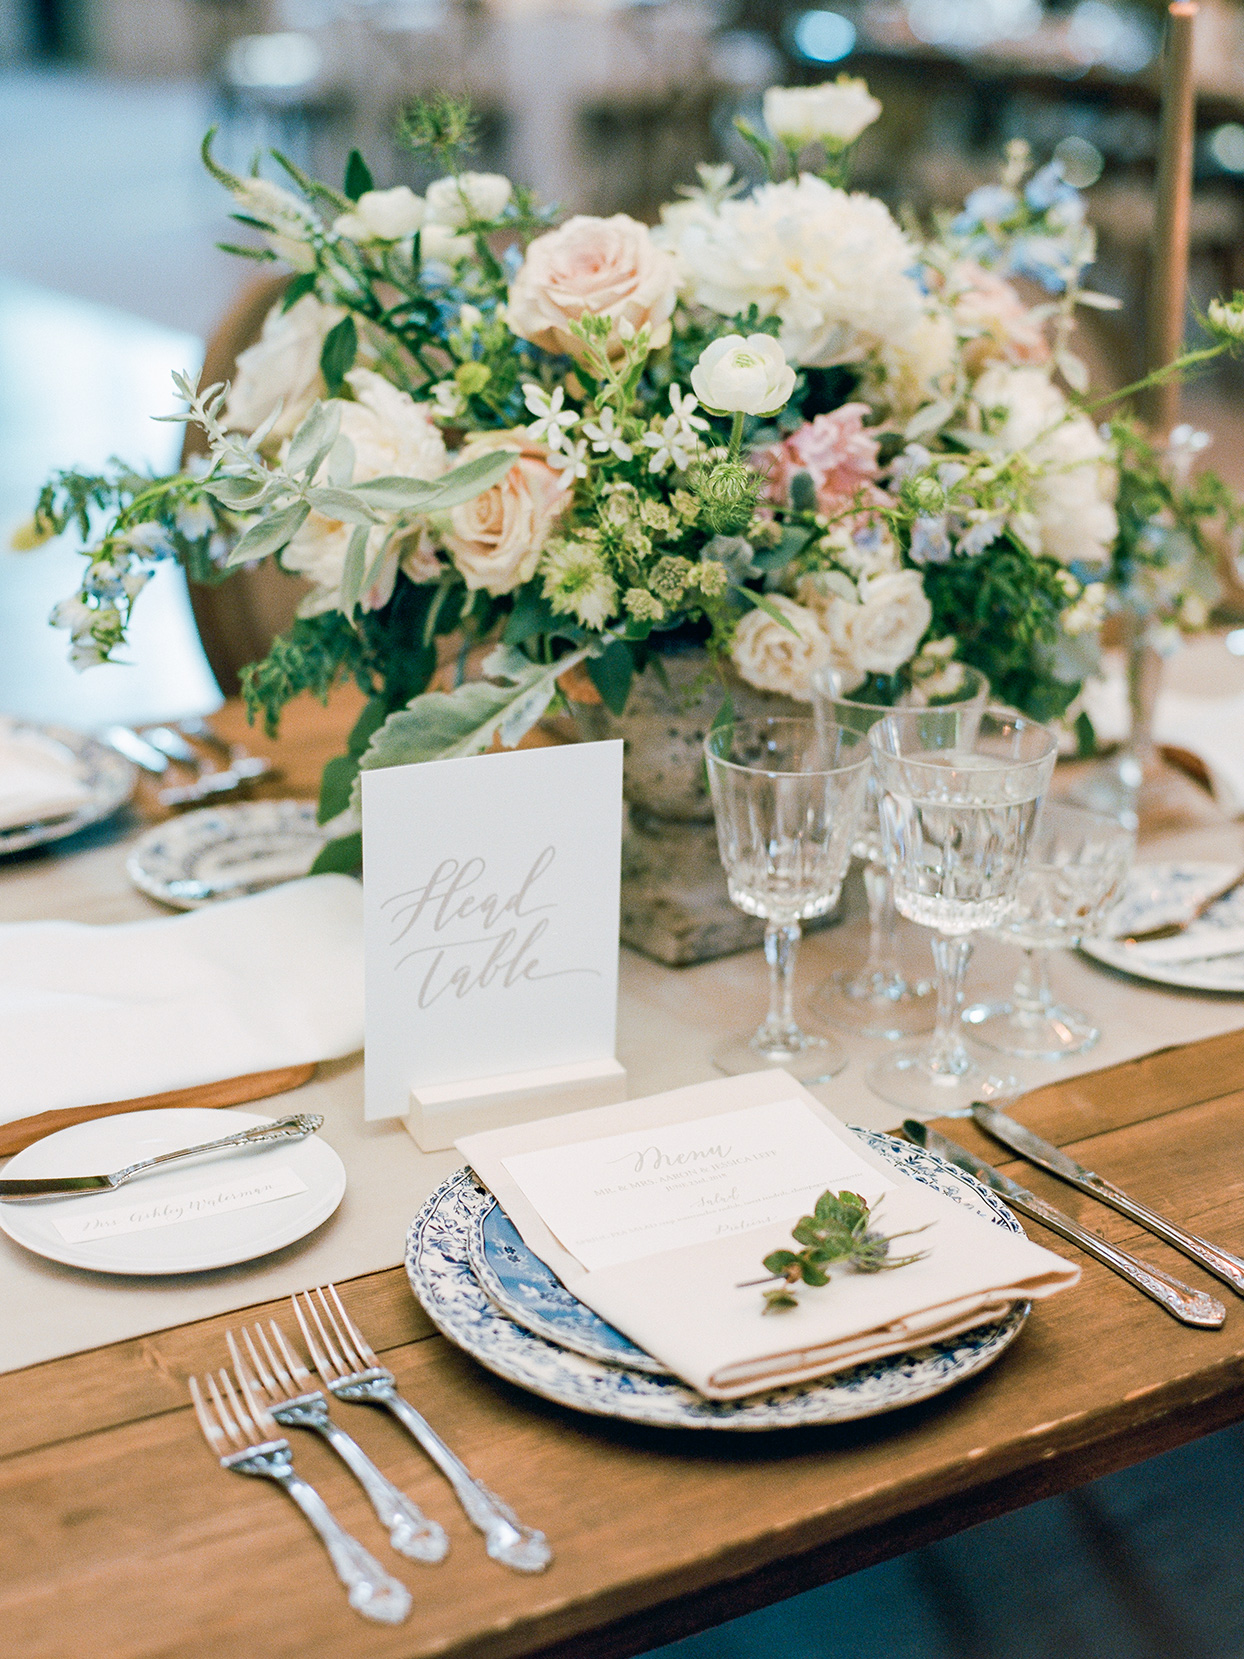 jessica aaron wedding place setting blue ornate dishes and floral arrangement